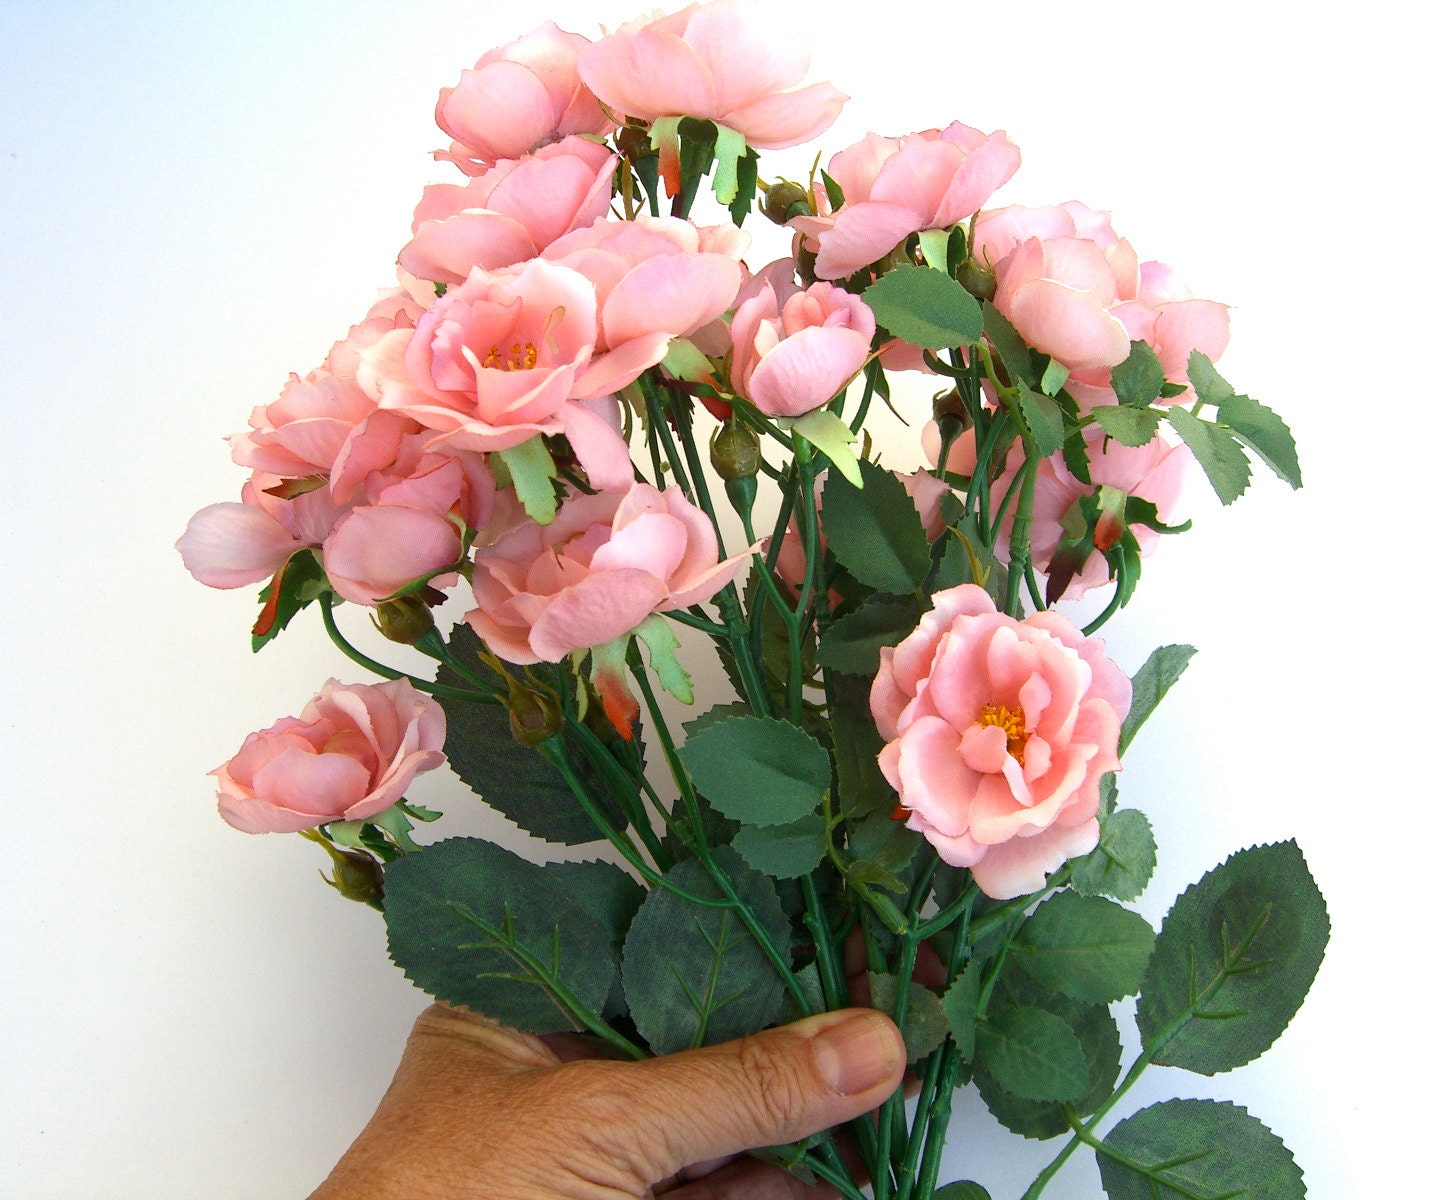 Wild Roses Peach Pink Floral Craft Supply Artificial